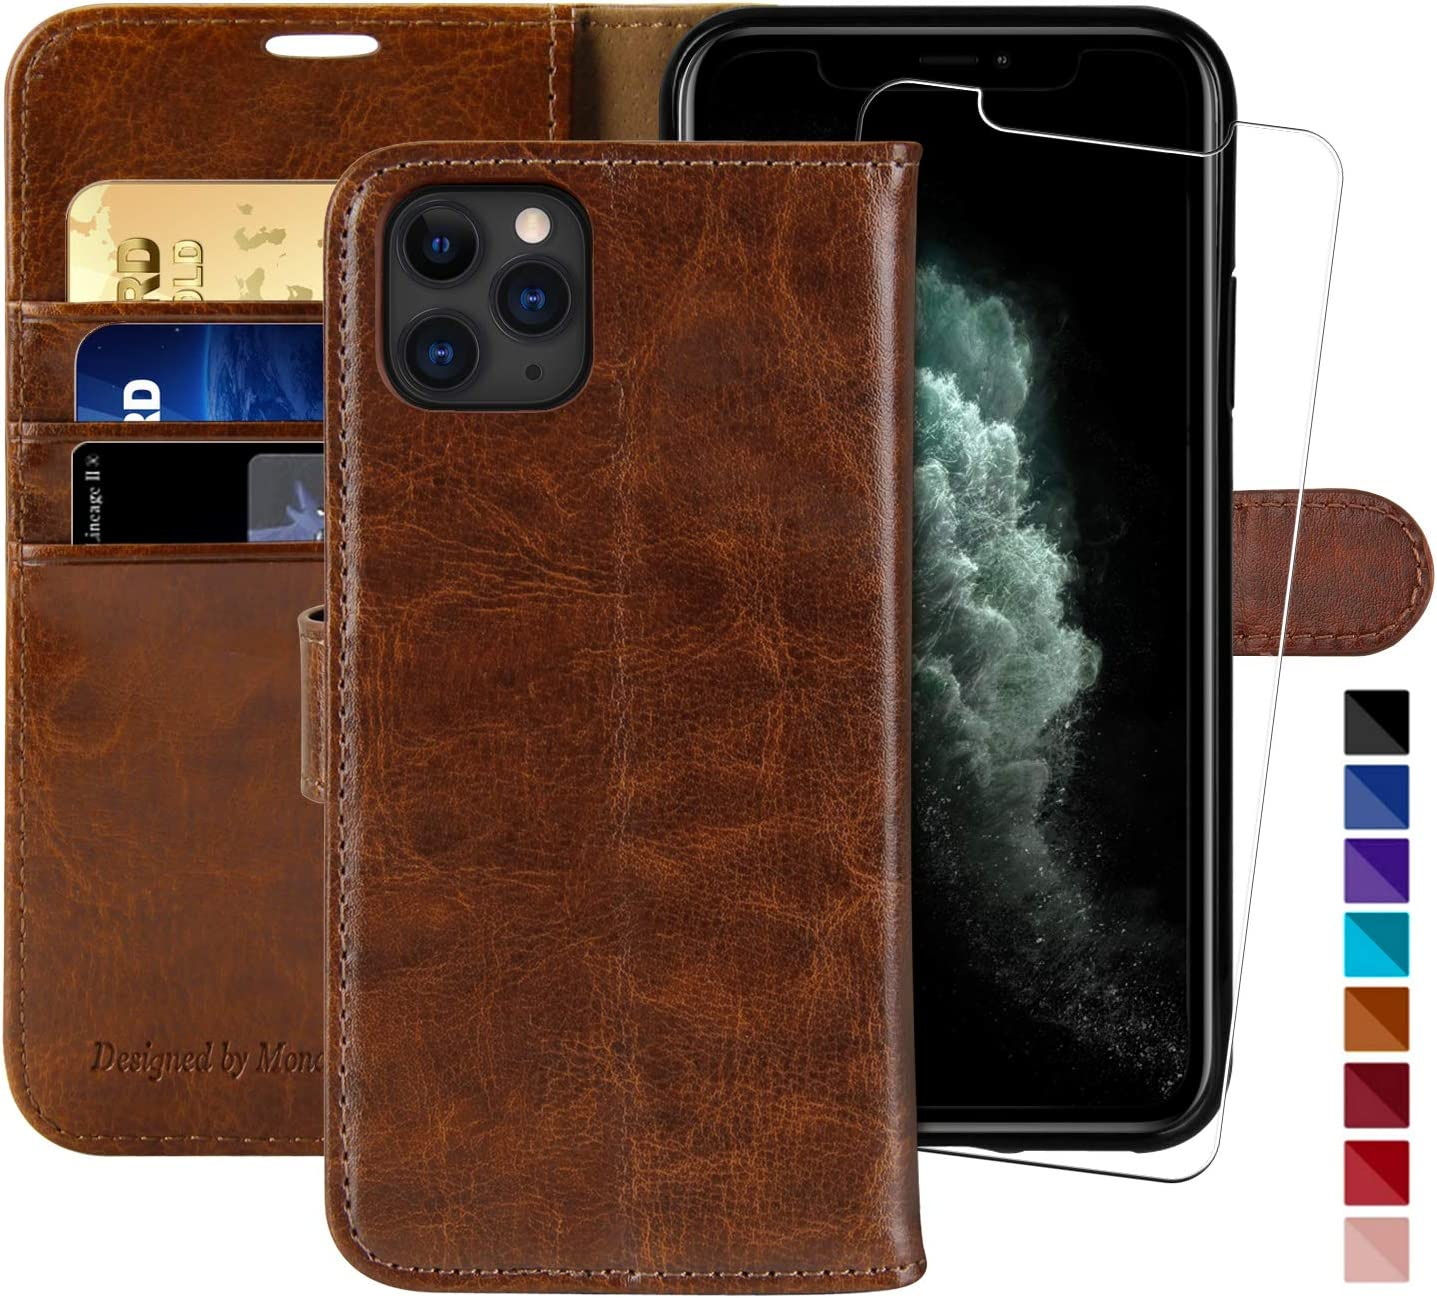 MONASAY Wallet Case for iPhone 12 Pro Max 5G,6.7-inch,[Glass Screen Protector Included] [RFID Blocking] Flip Folio Leather Cell Phone Cover with Credit Card Holder